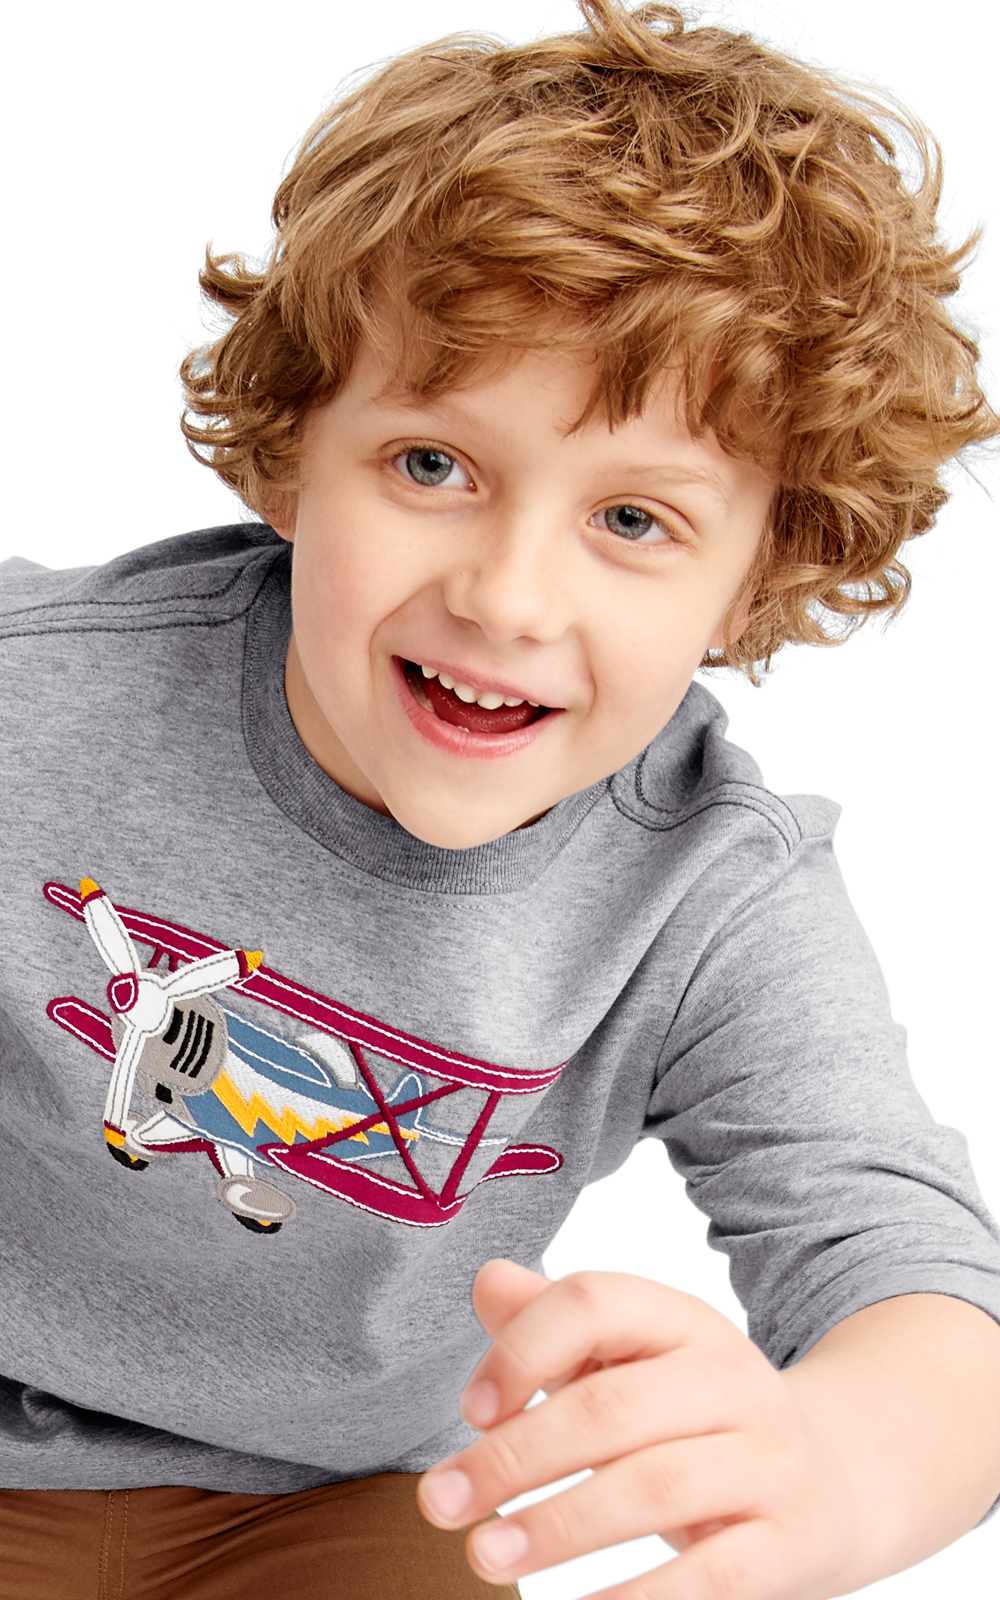 Hanna Andersson Quality Kids Graphic Tees